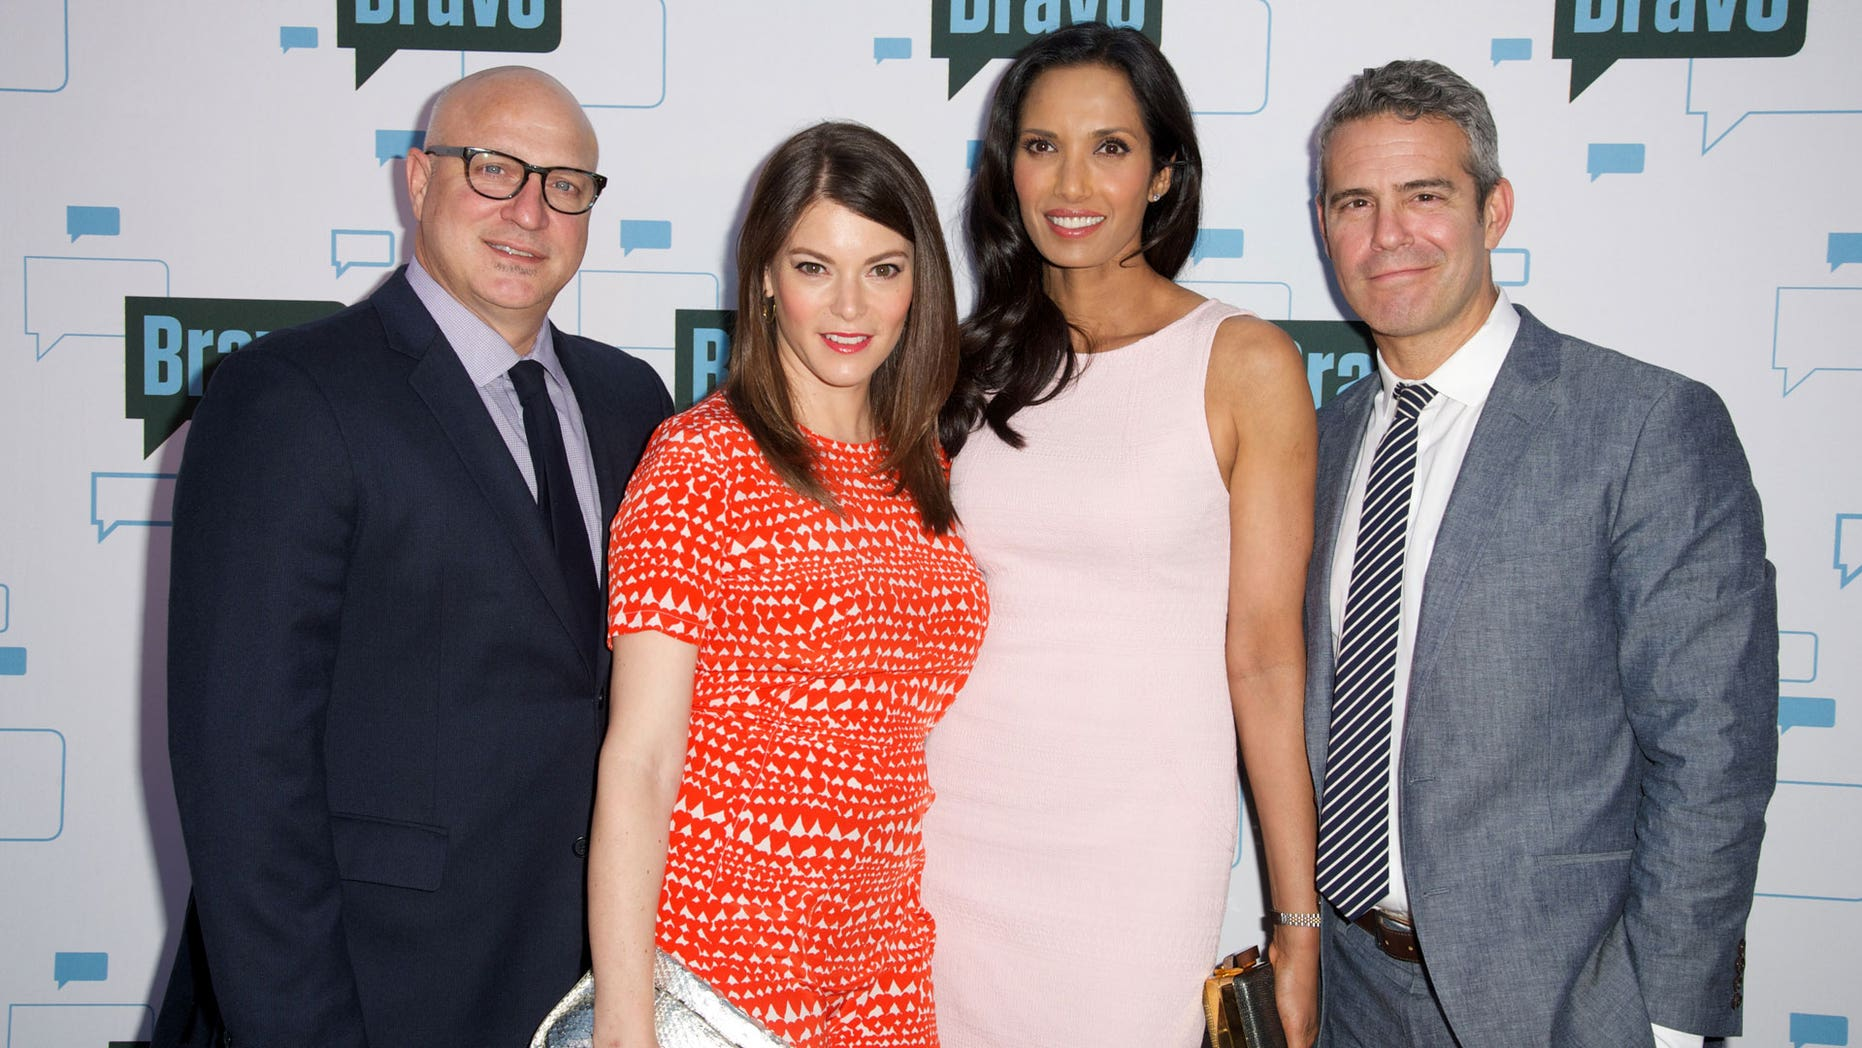 May 1, 2014.'Top Chef' judges Tom Colicchio, Gail Simmons, Padma Lakshmi and Bravo's Andy Cohen at the 'Watch What Happens Live! Presents a Night with Top Chef' at the Television Academy in Hollywood.